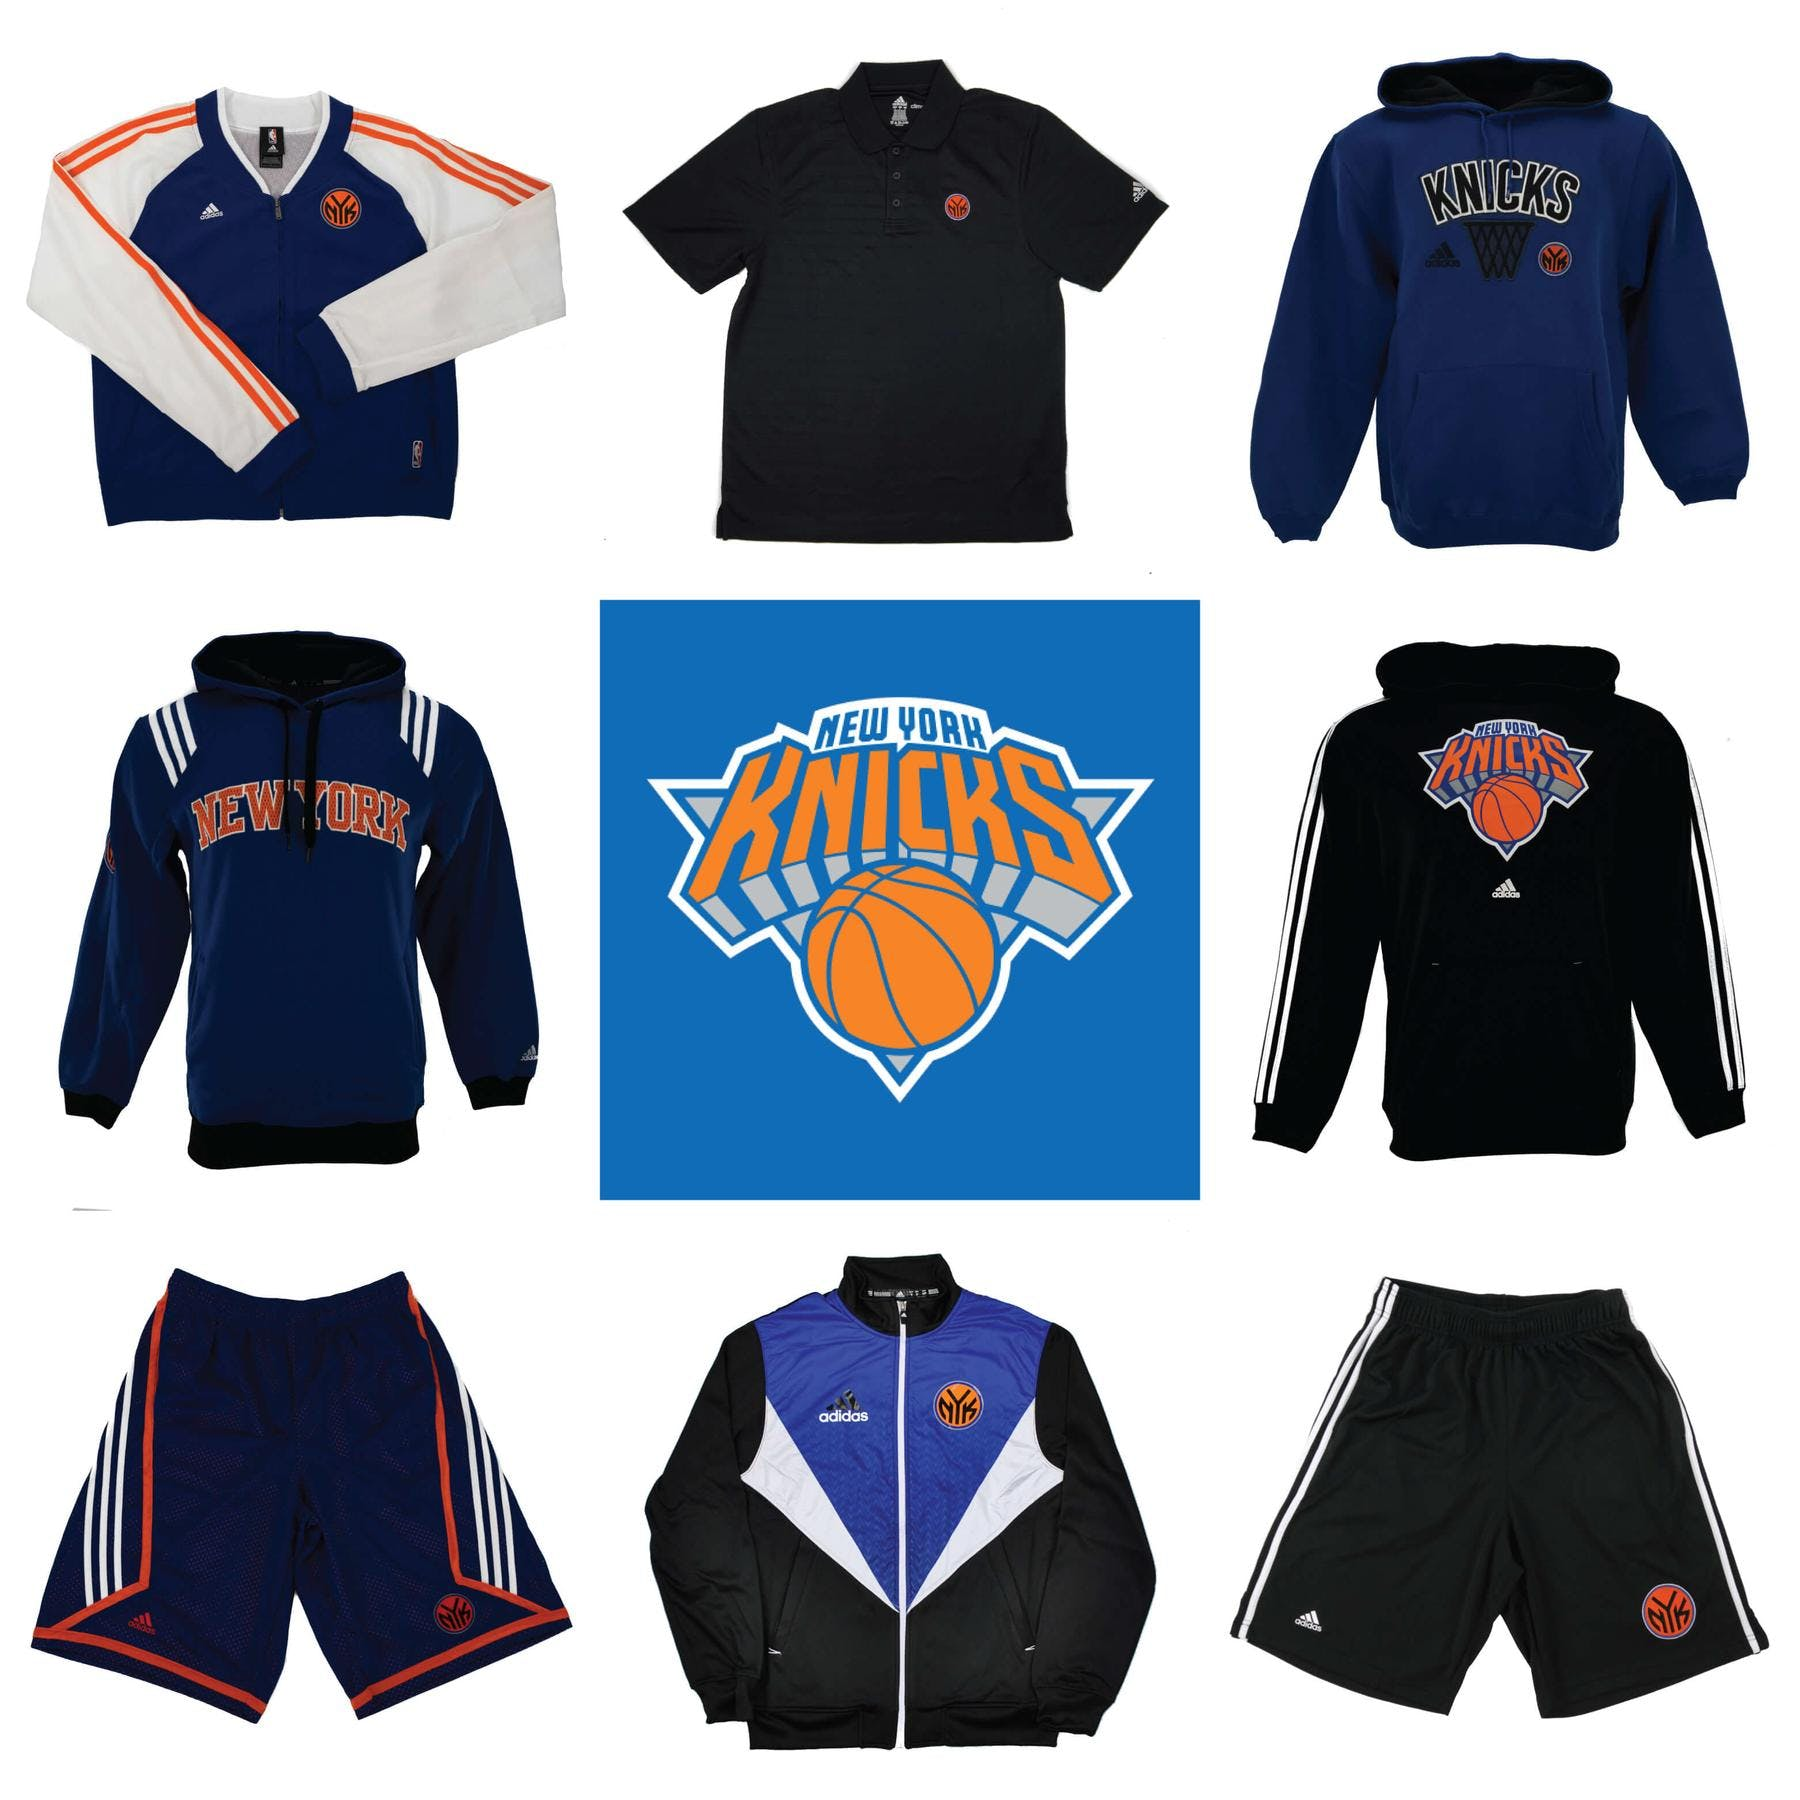 wholesale dealer 0a979 f83f1 New York Knicks Officially Licensed NBA Apparel Liquidation - 1,180+ Items,   54,000+ SRP!   DA Card World